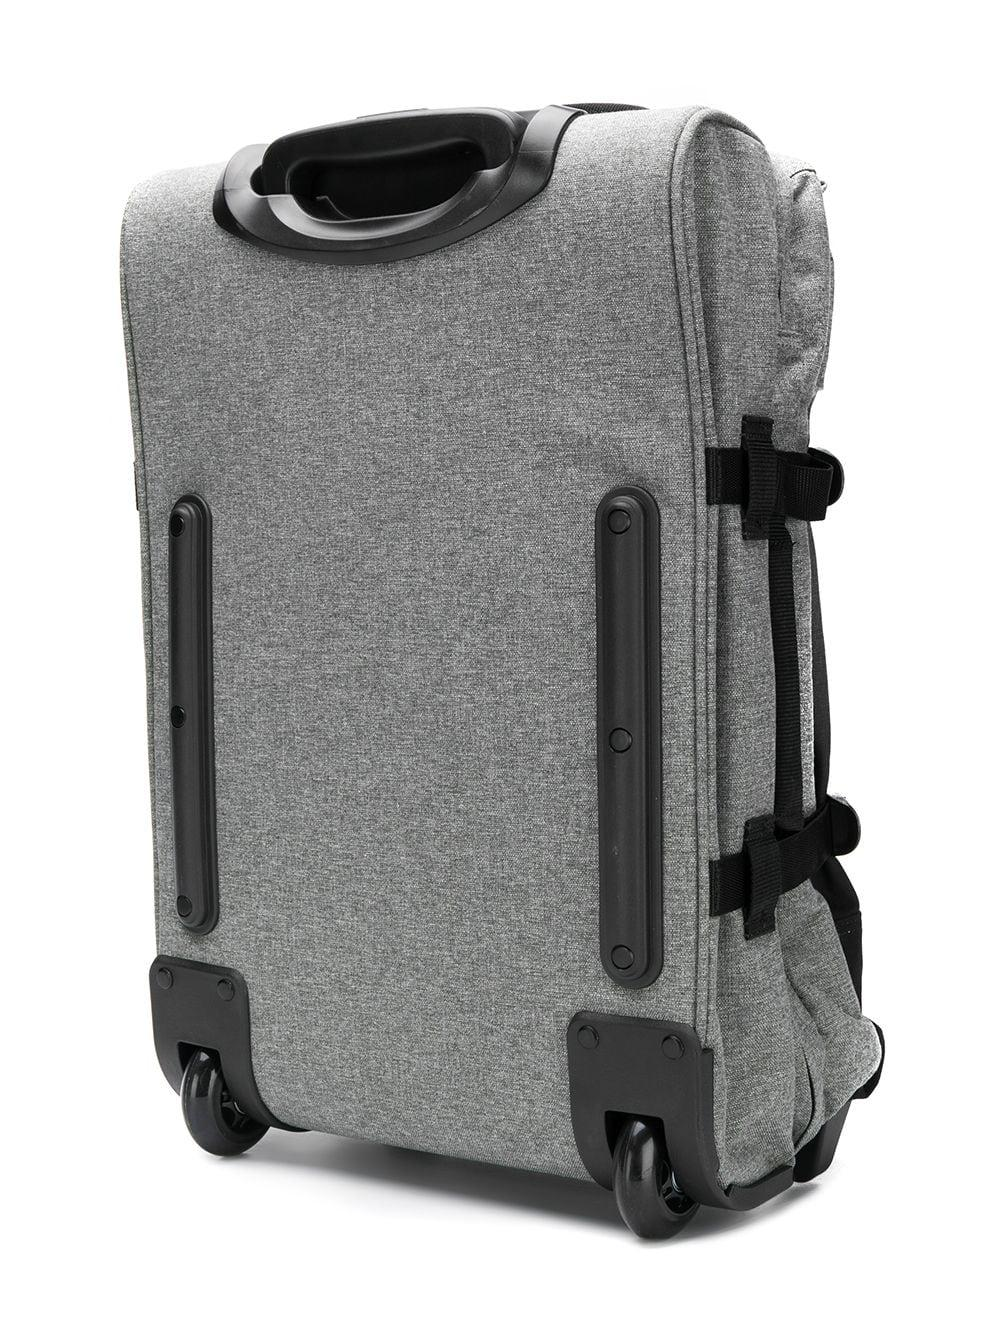 Eastpak Small Compression Rollie Bag In Gray Save Hand Rolling Compressed View Fullscreen